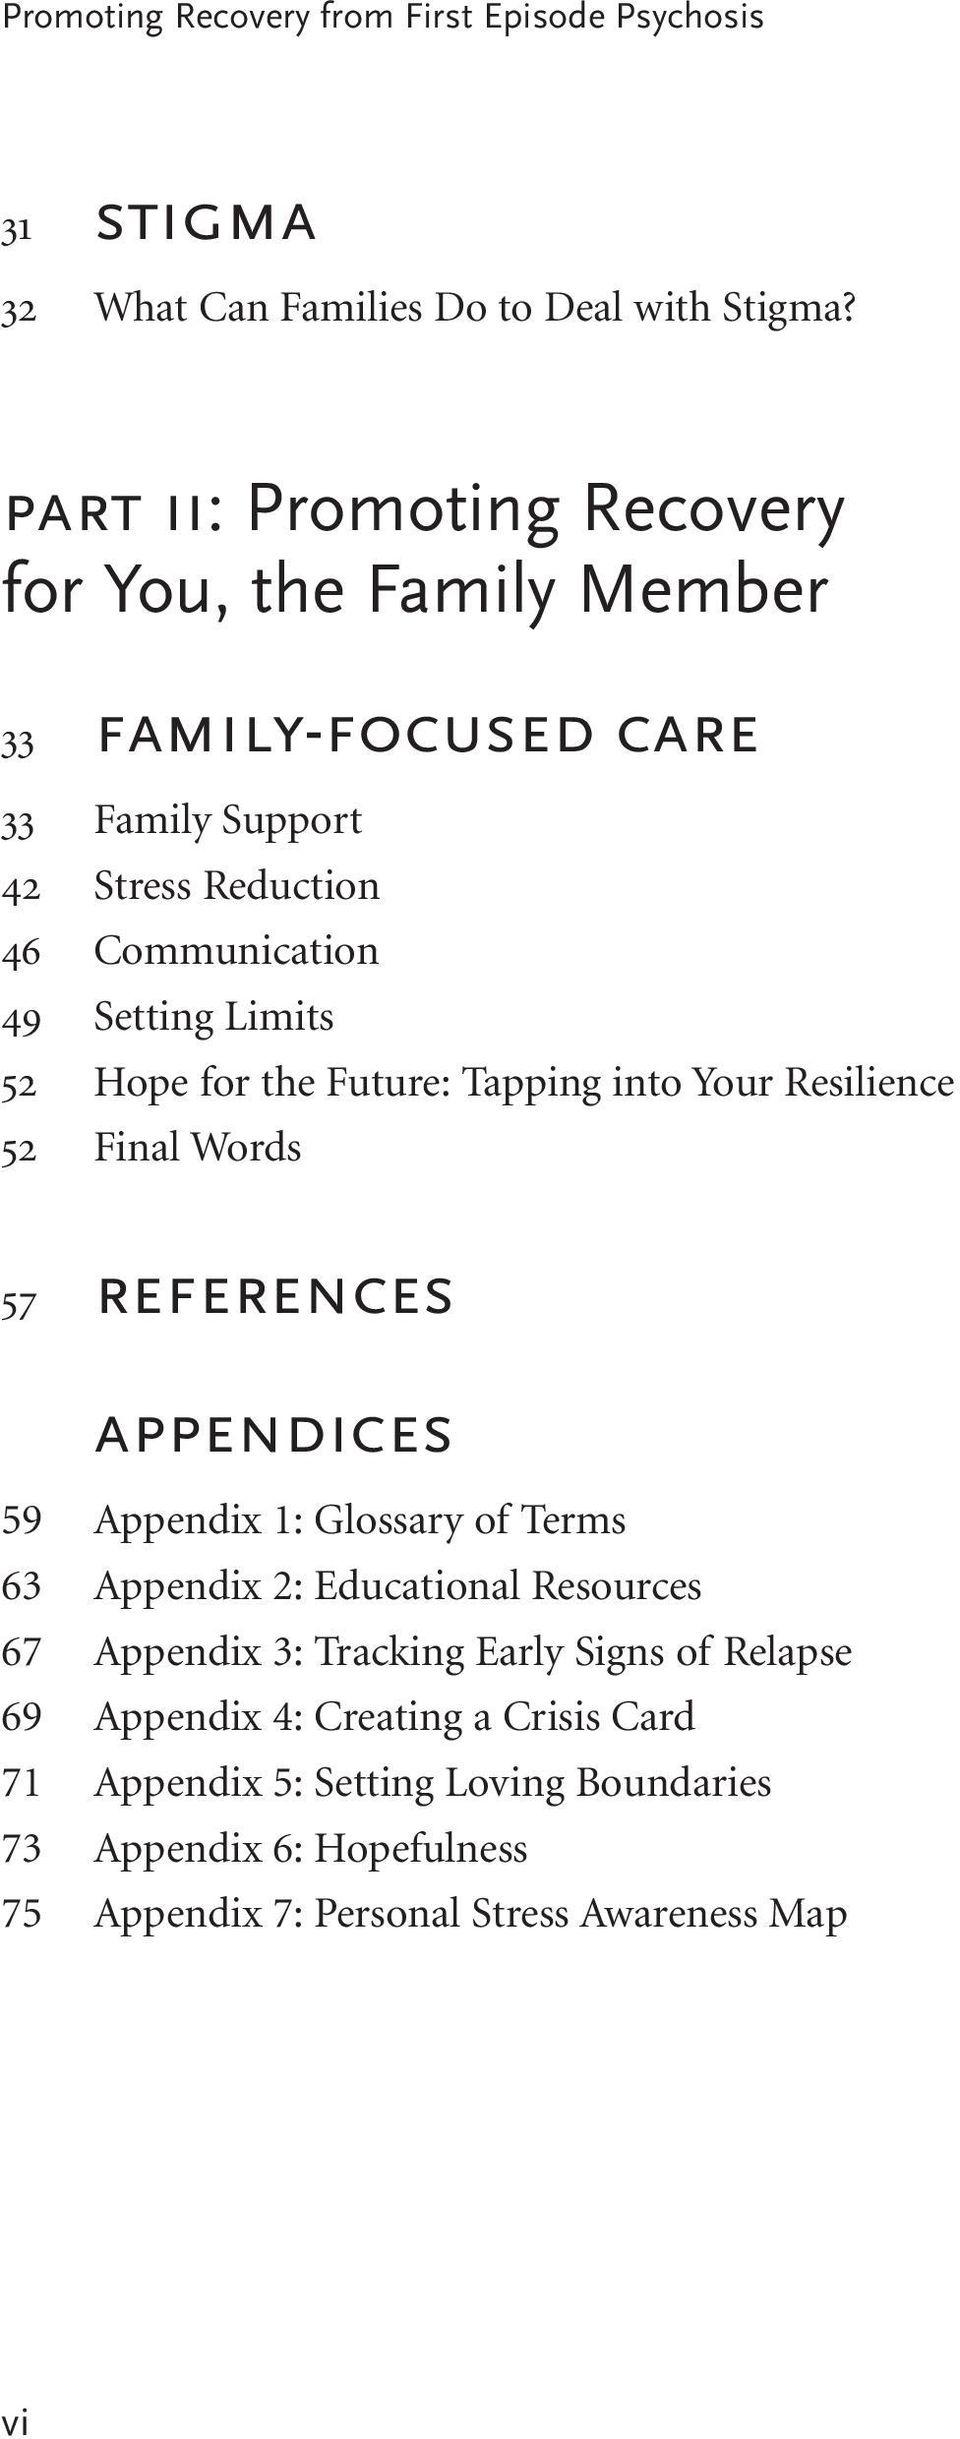 Hope for the Future: Tapping into Your Resilience 52 Final Words 57 references appendices 59 Appendix 1: Glossary of Terms 63 Appendix 2: Educational